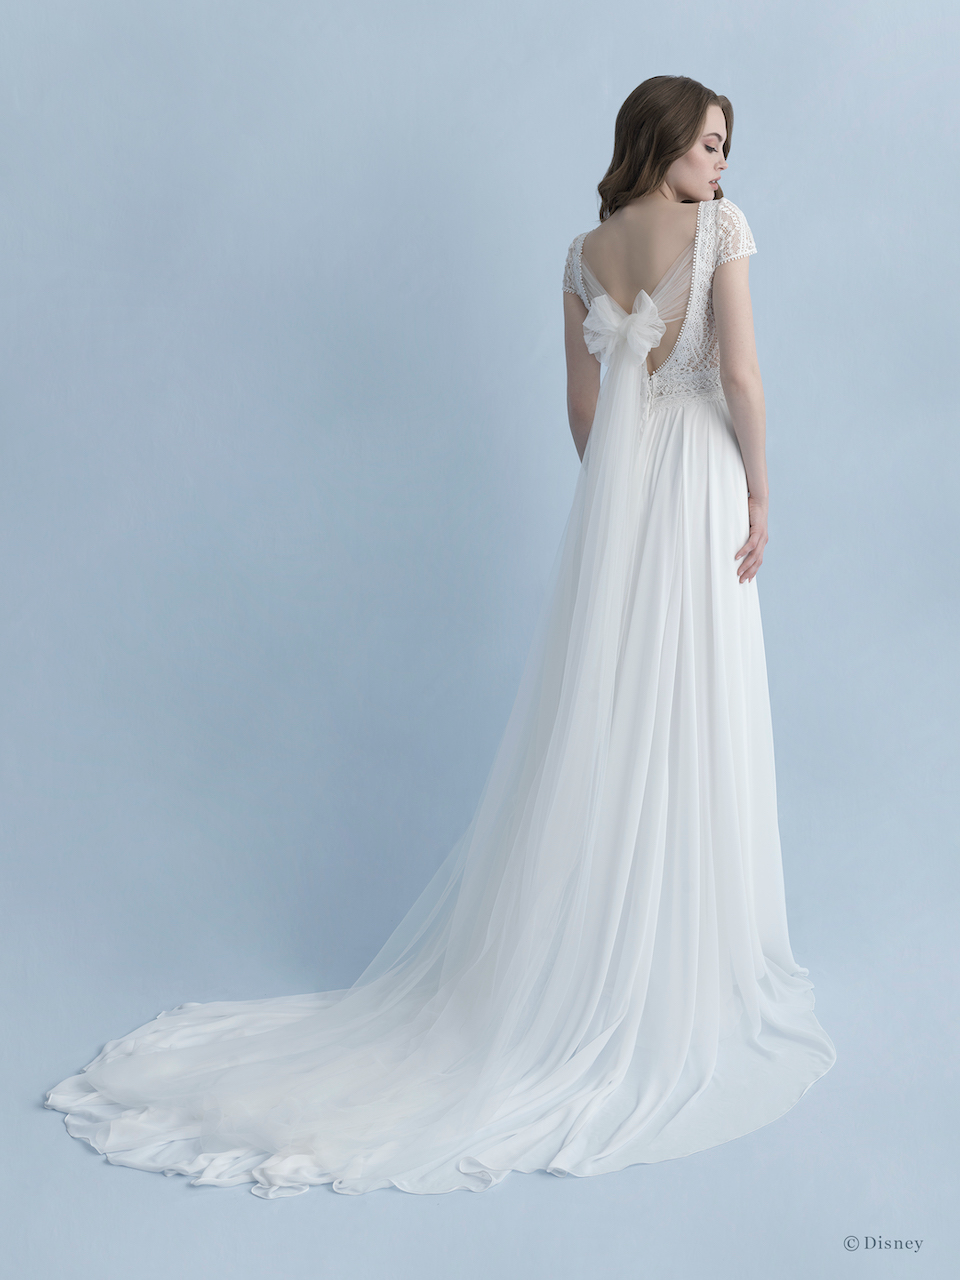 Cap Sleeve V Neckline A Line Wedding Dress With Cotton Lace Bodice Chiffon Skirt And Bow At Ba Rapunzel Wedding Dress Princess Wedding Dresses Wedding Dresses [ 1280 x 960 Pixel ]